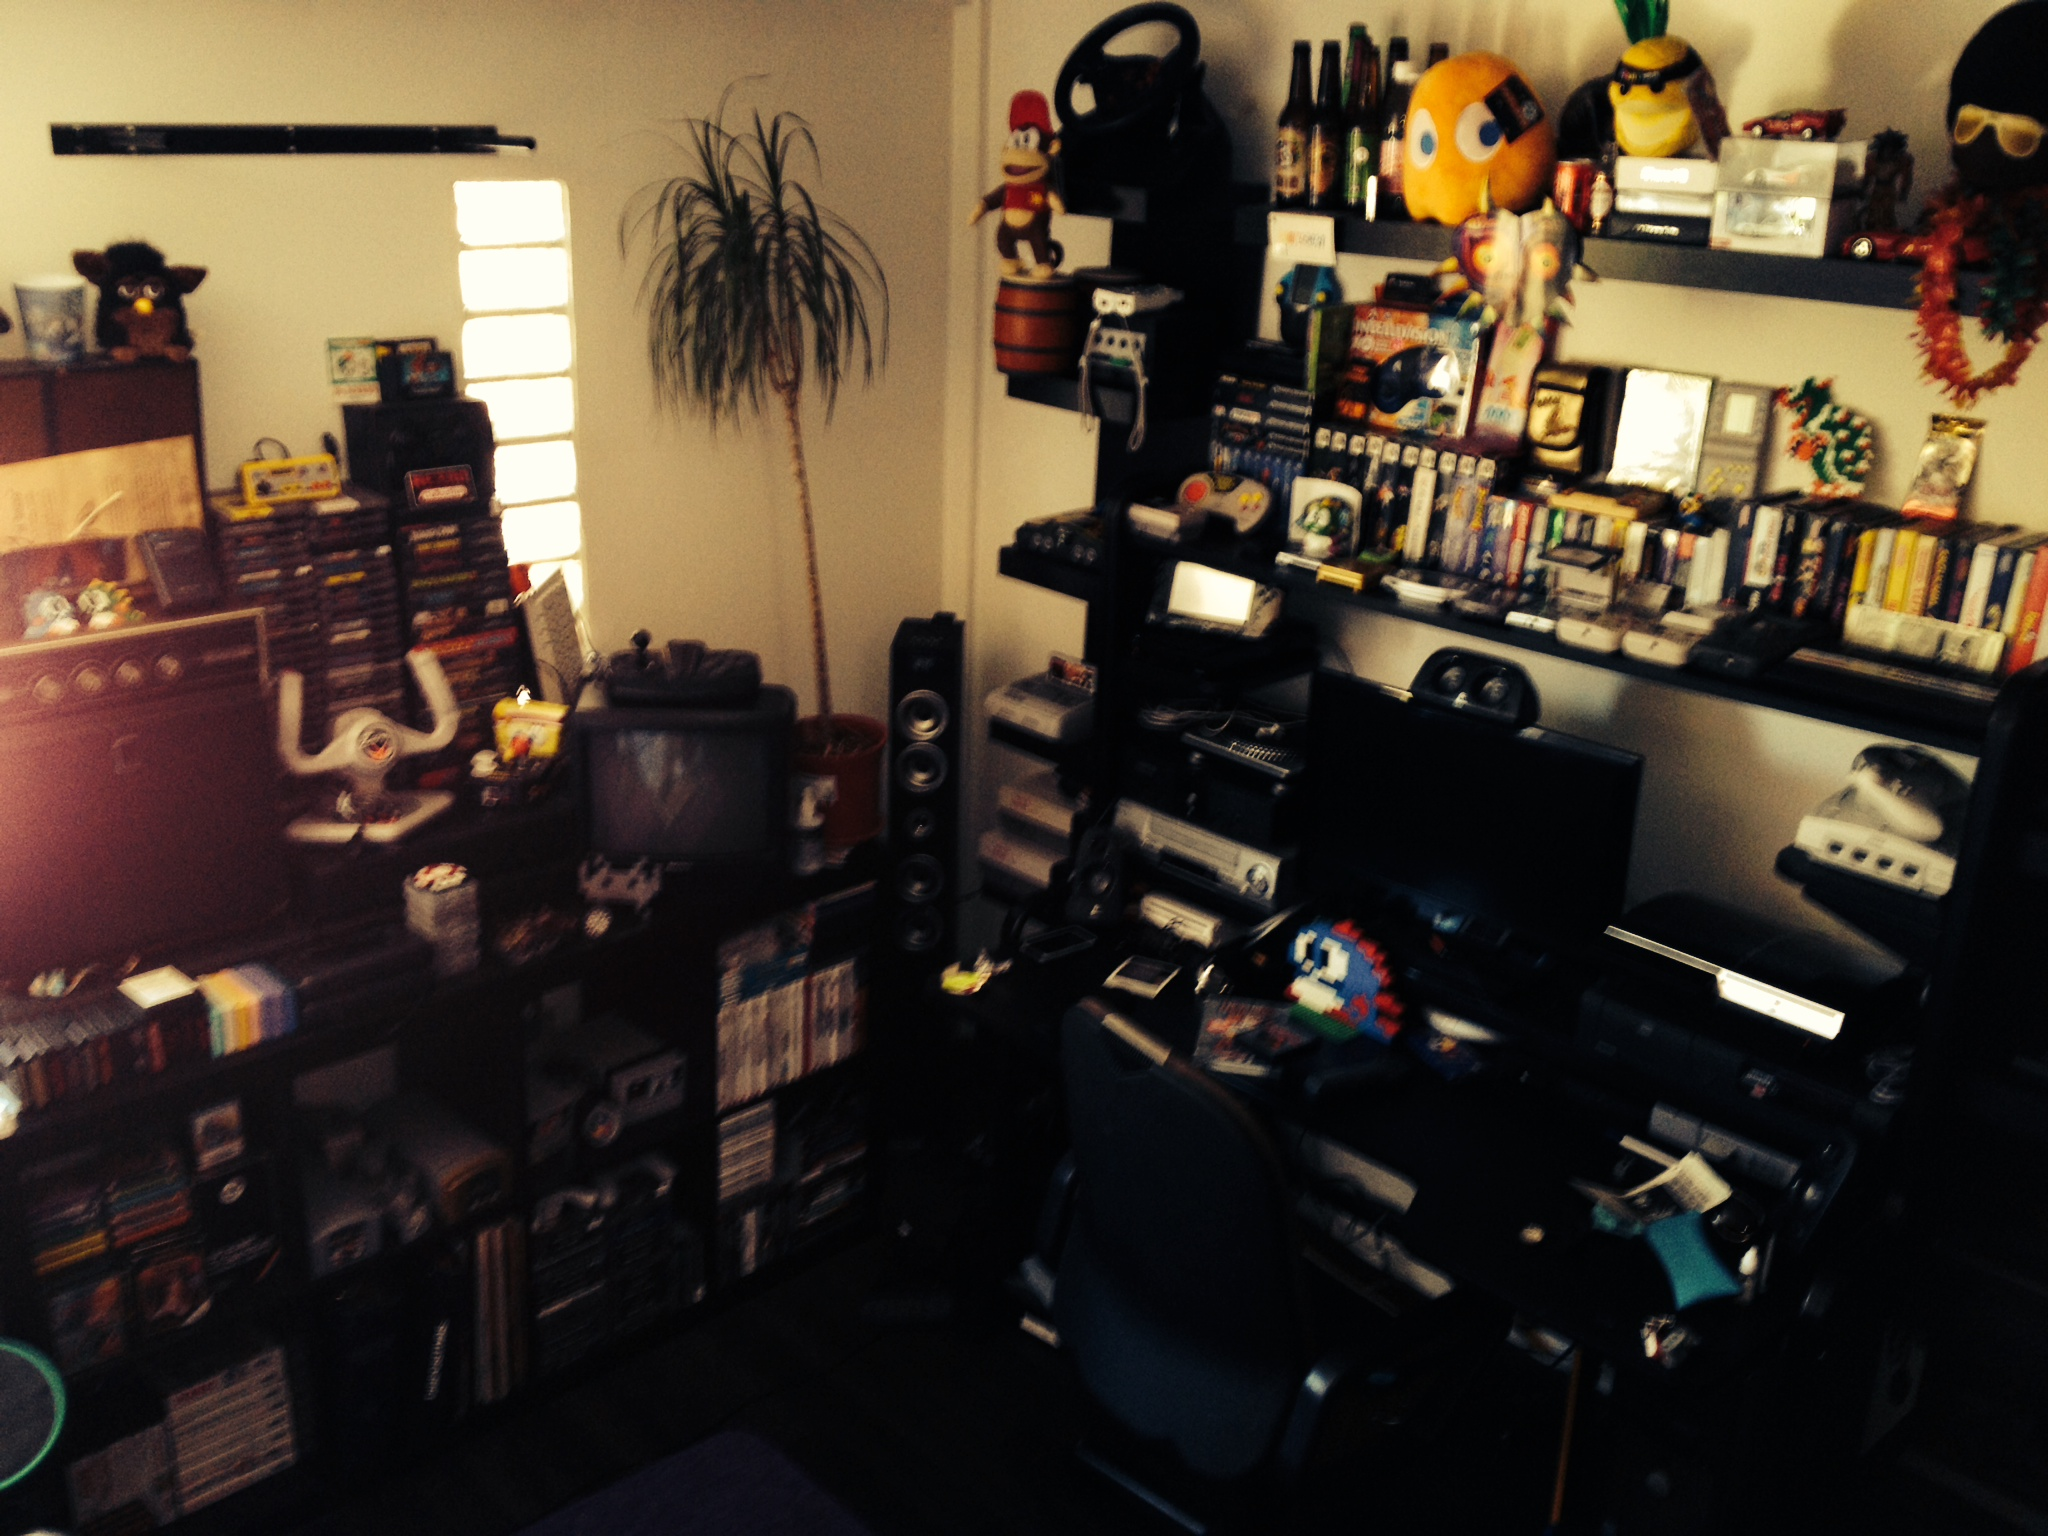 Gamer Room Habitaciones Envidiables Borntoplay Blog De